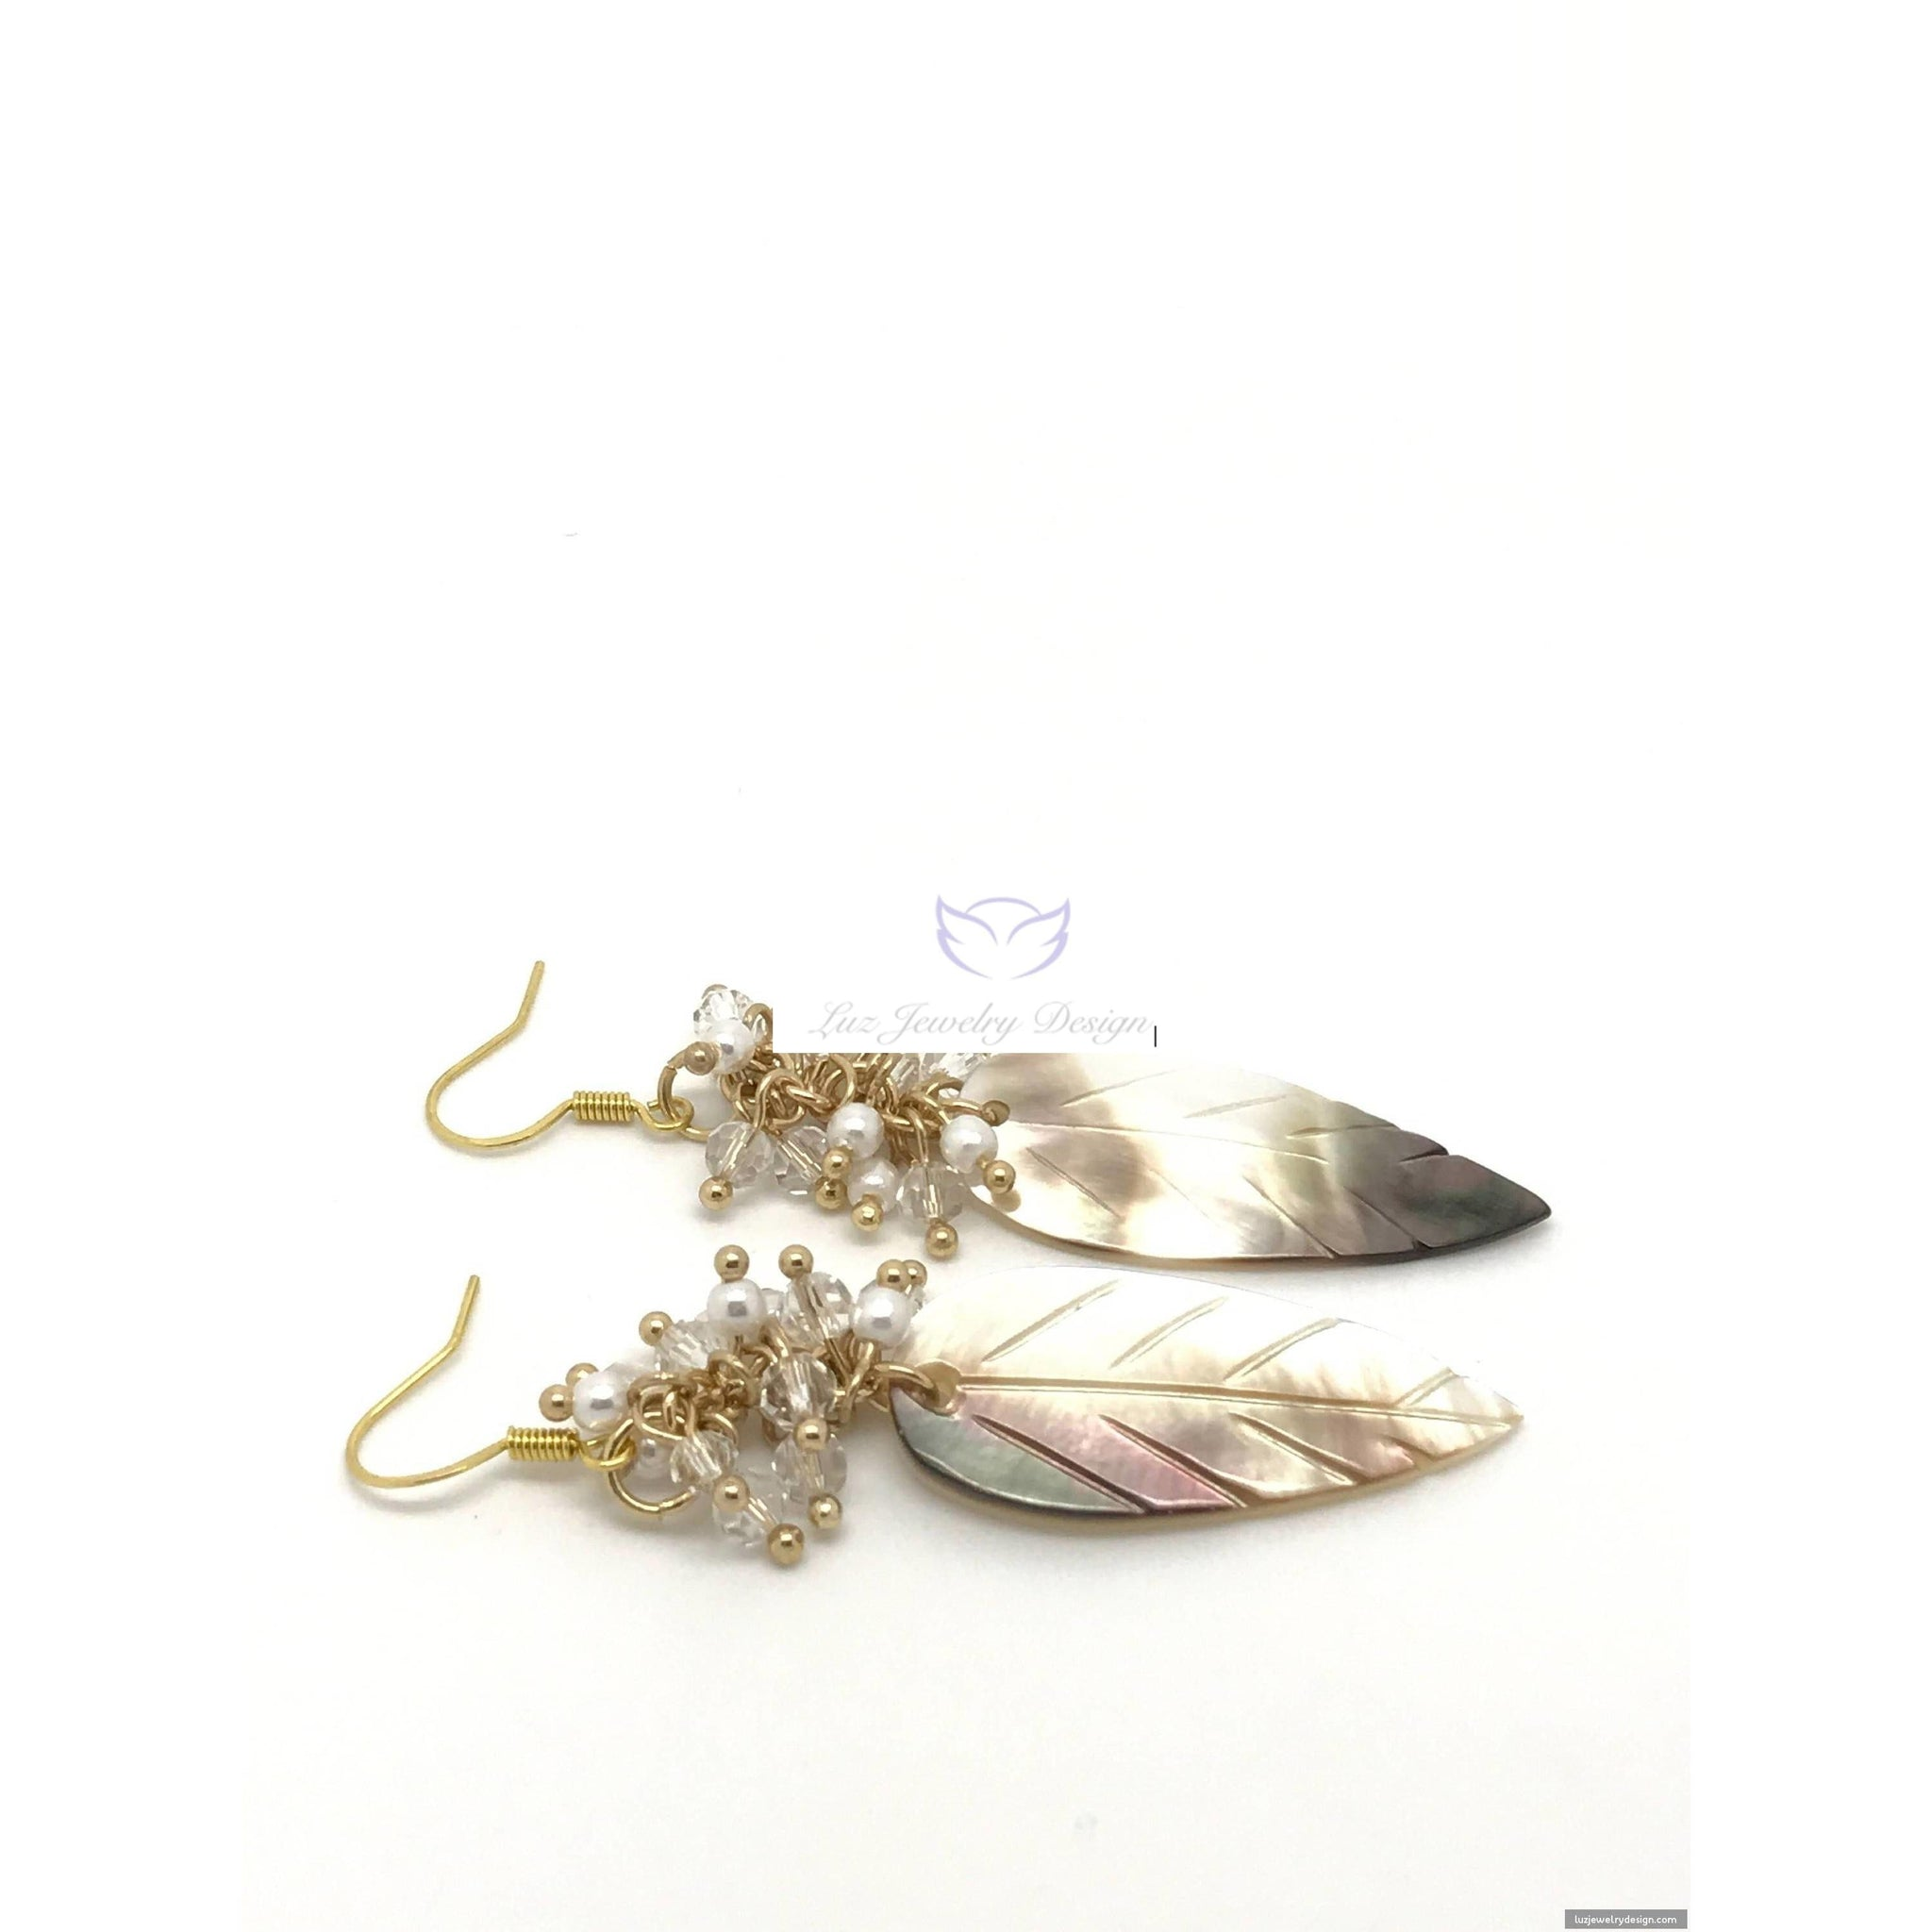 Beige Shell Earrings with Crystal Clusters - Luzjewelrydesign